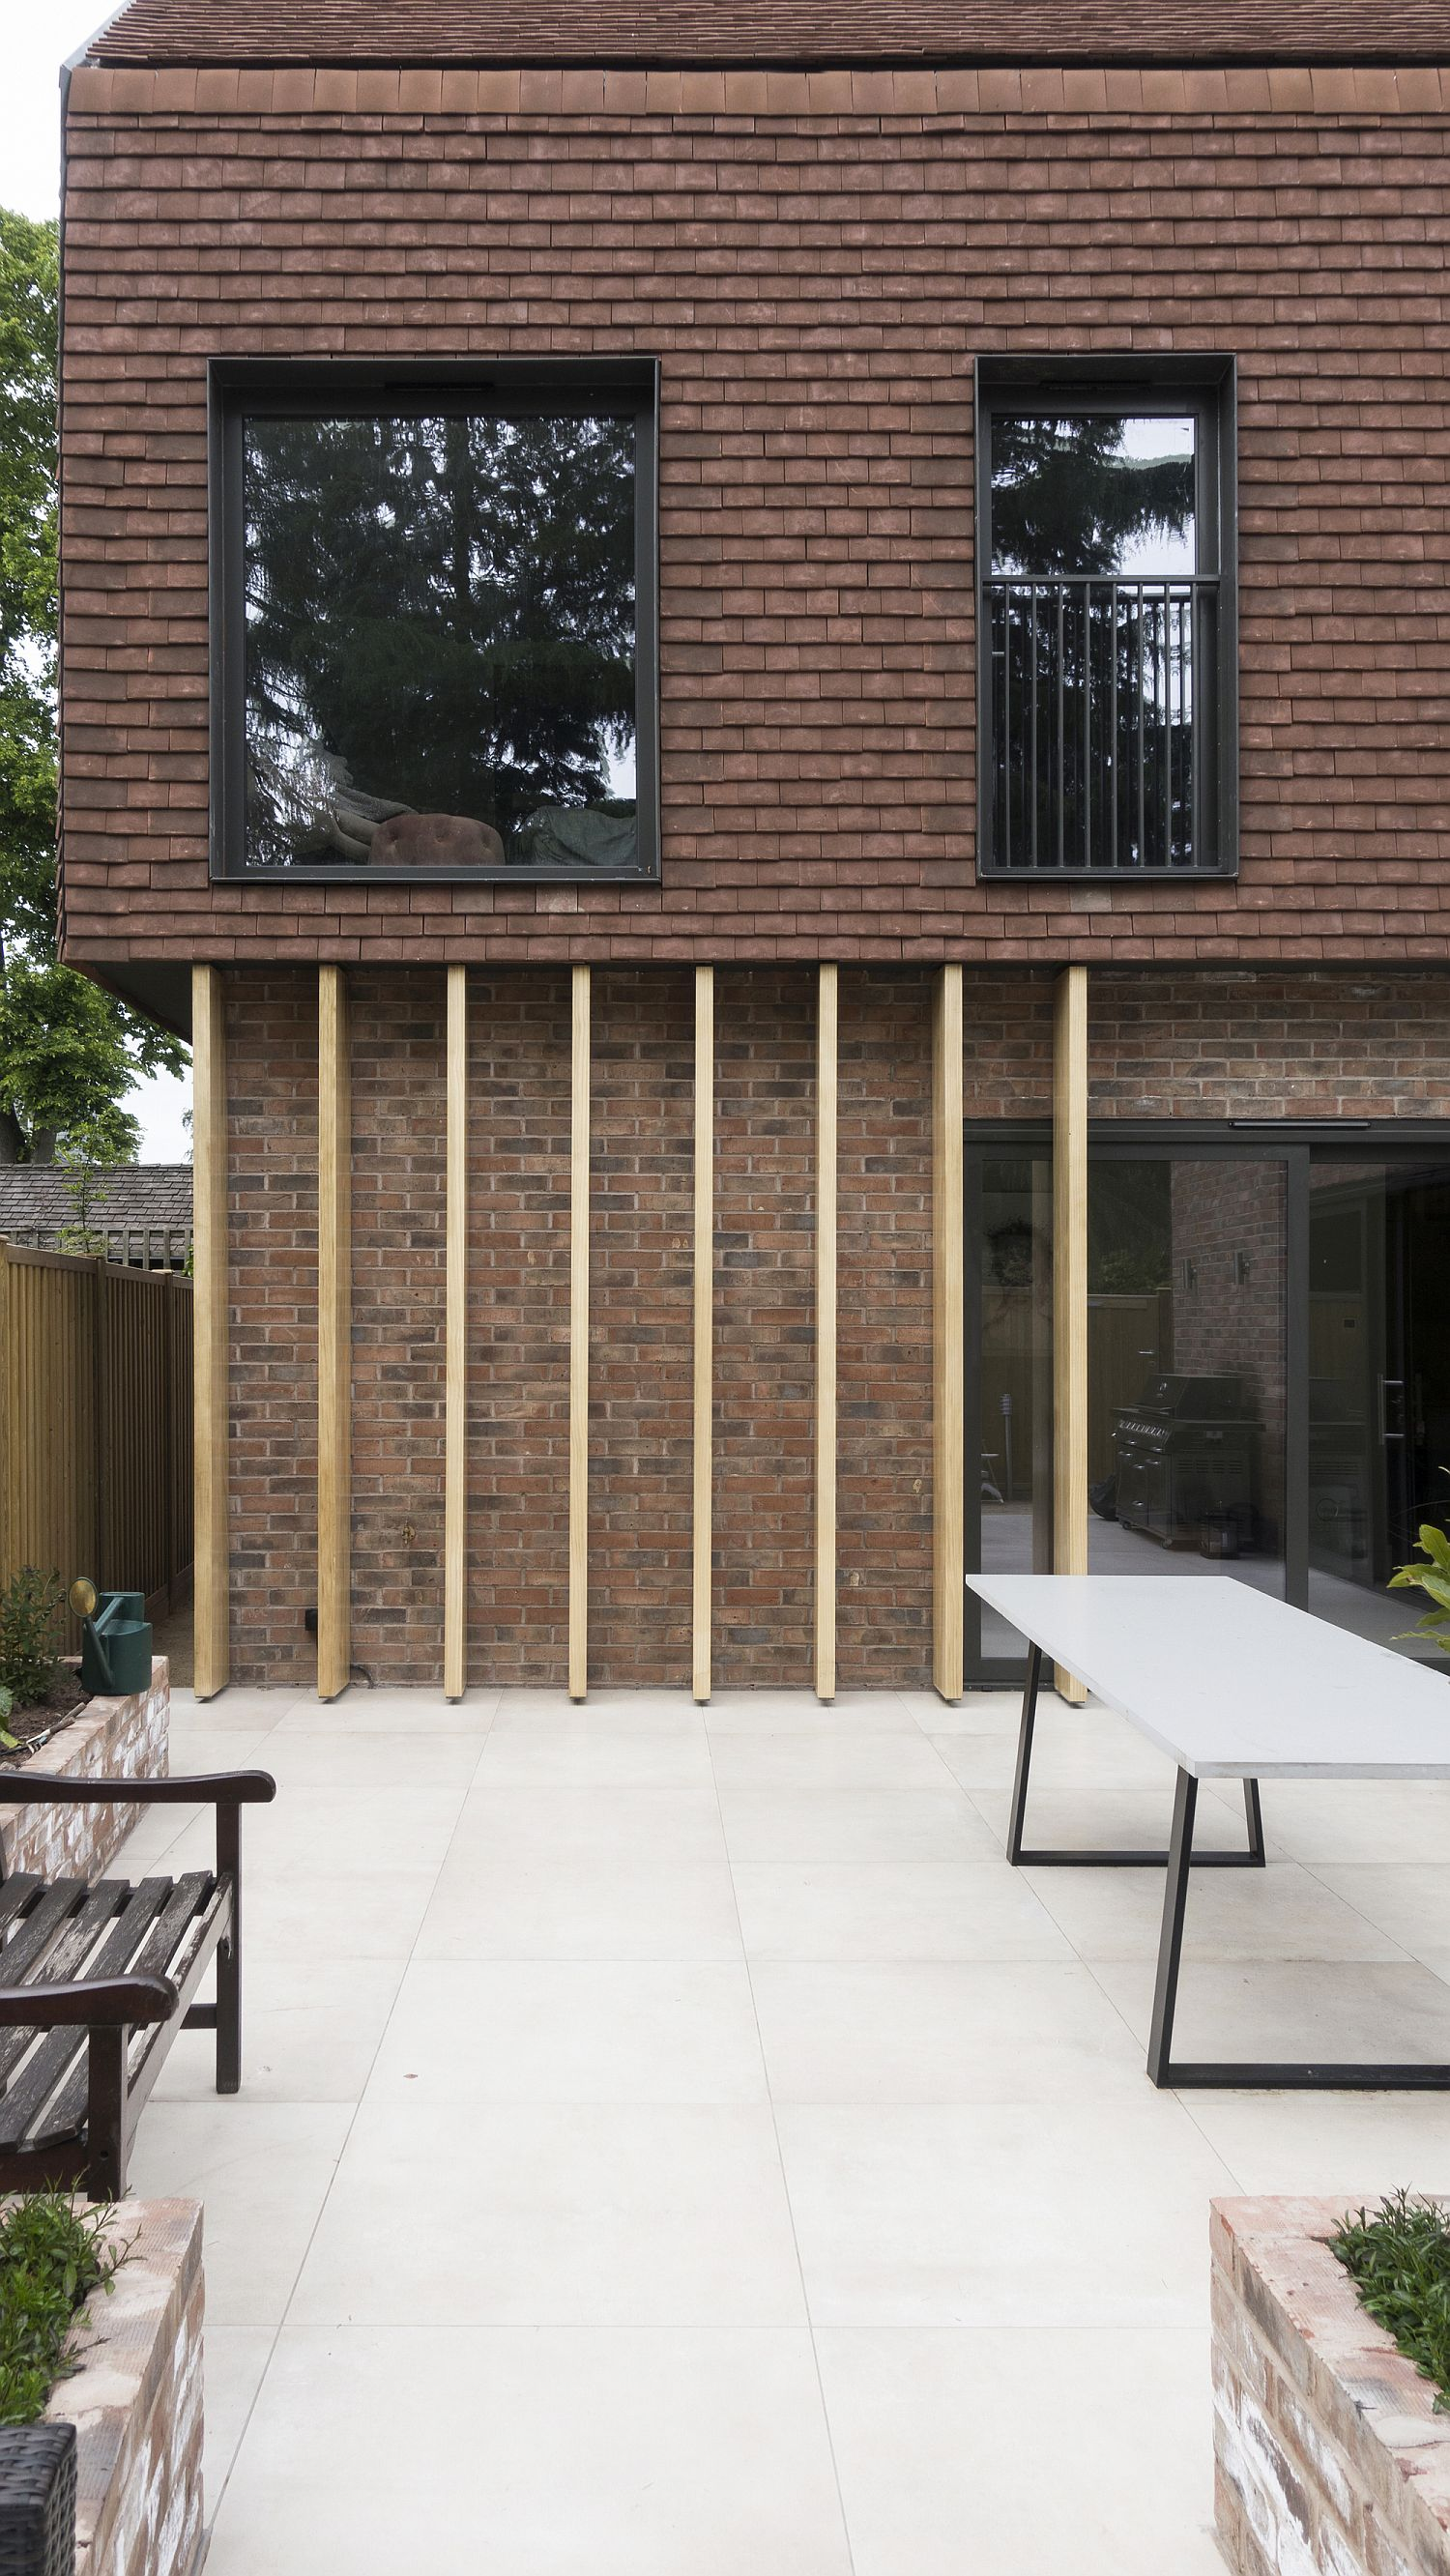 Pivate courtyard of the Terracotta House surrounded by greenery